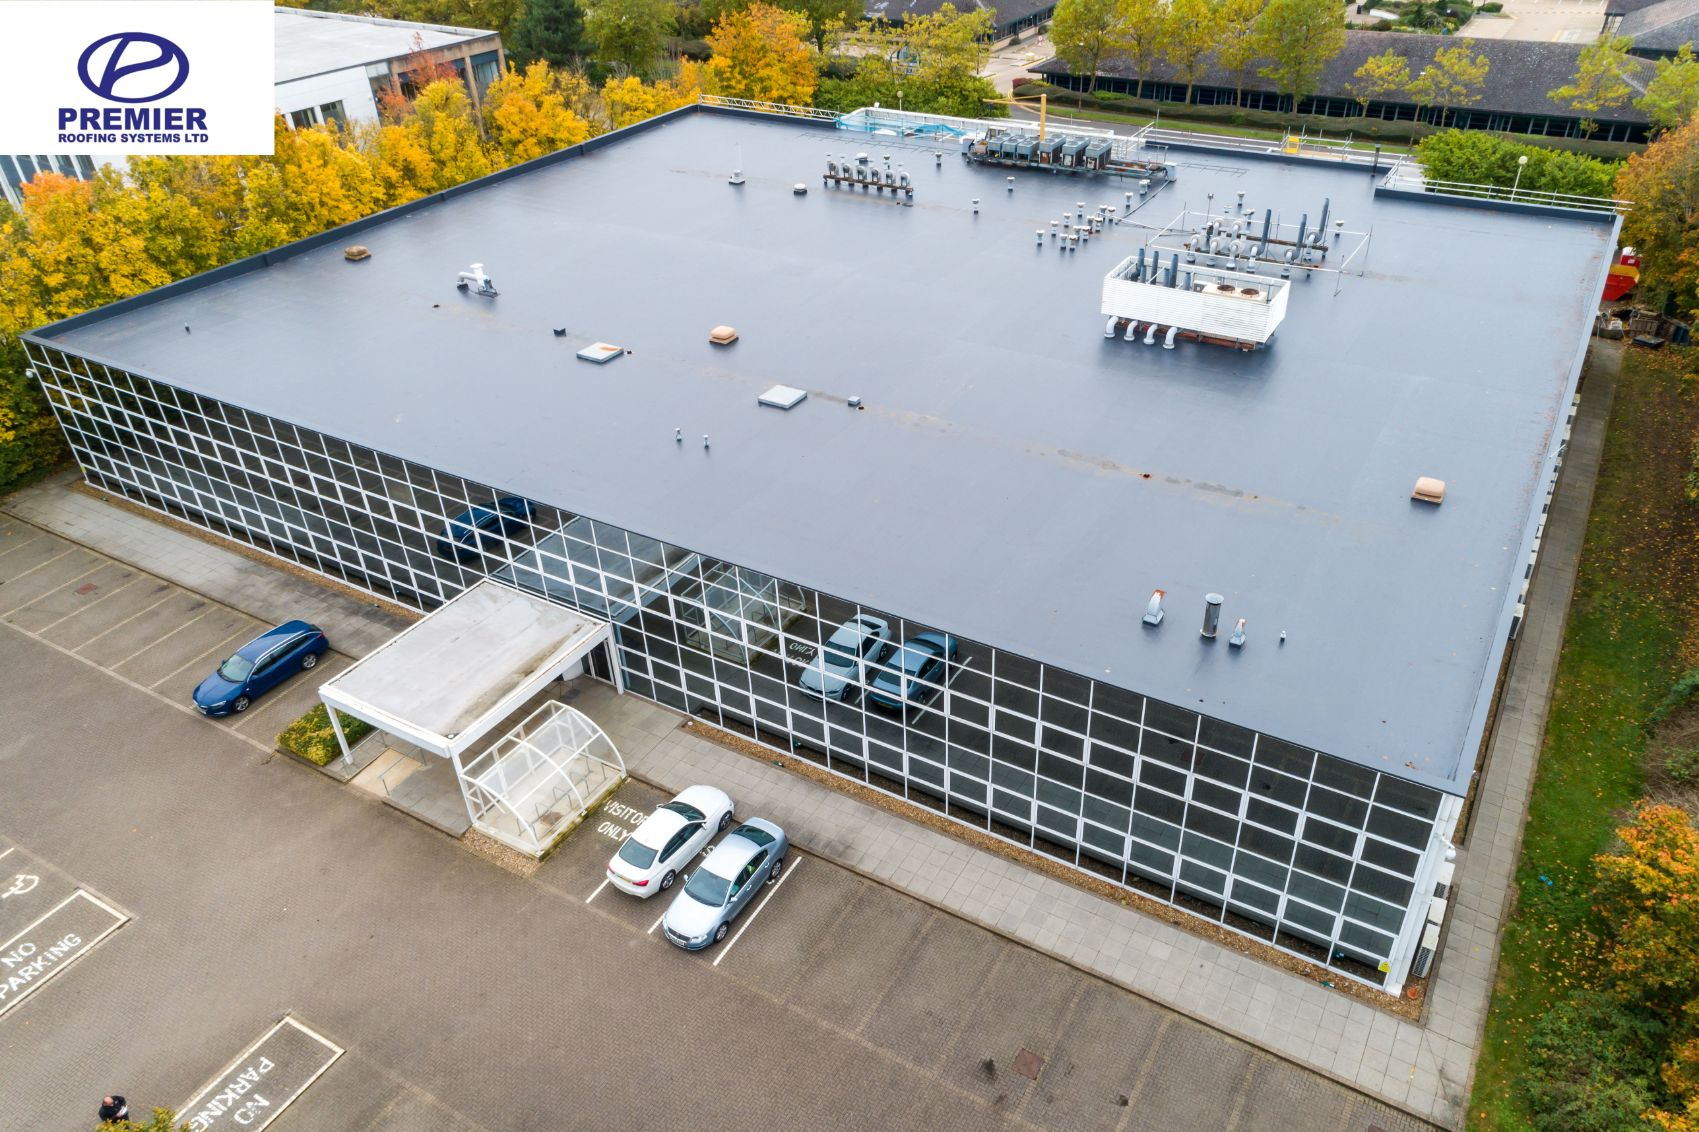 Aerial photo of roof taken from a drone